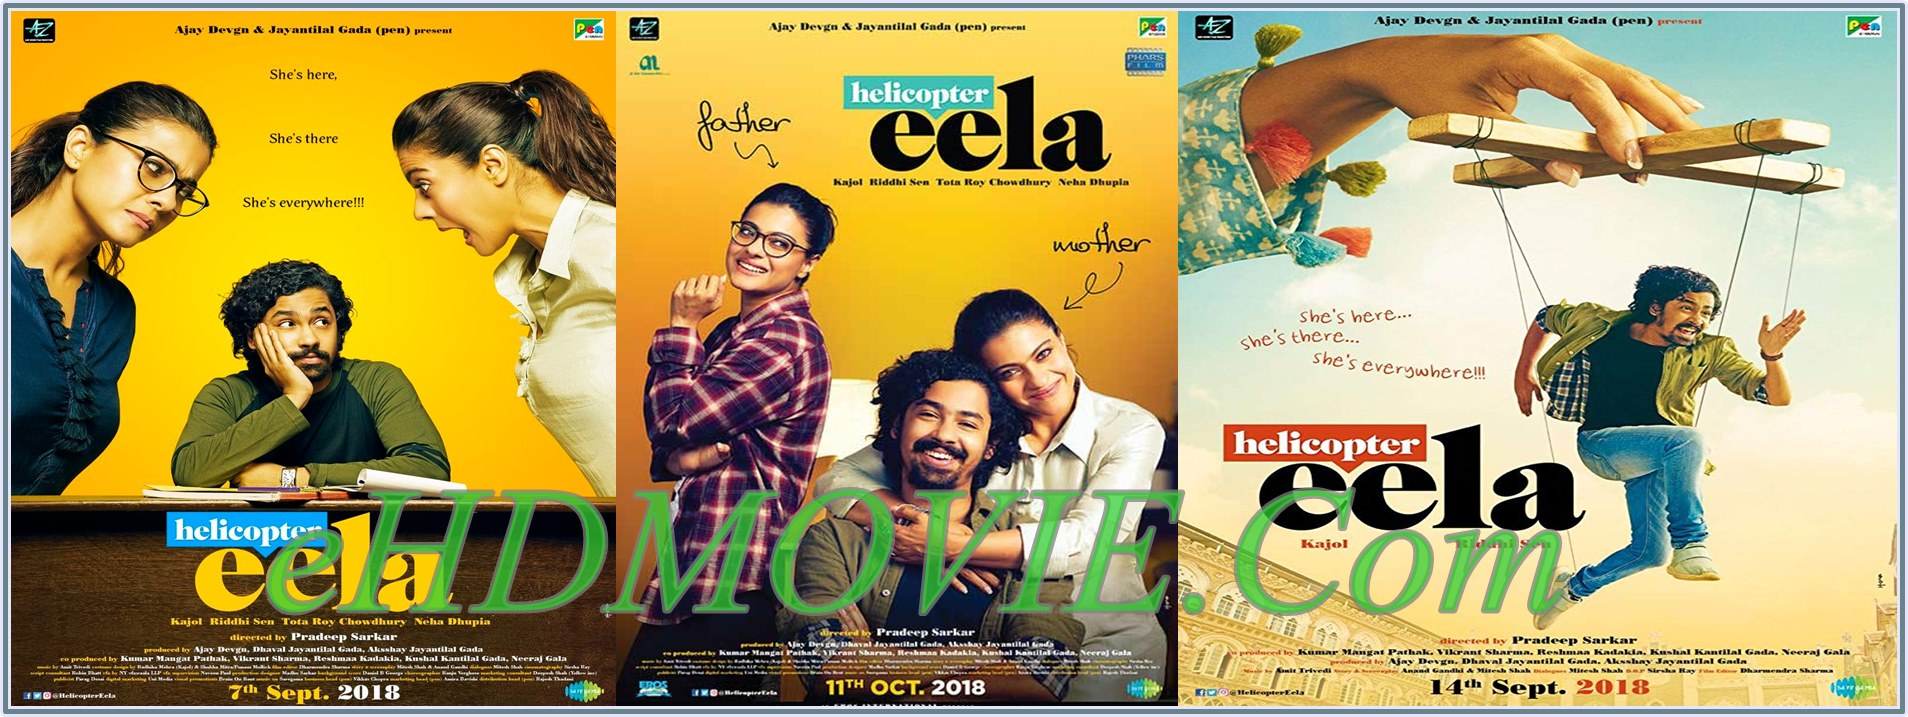 Helicopter Eela 2018 Full Movie Hindi 1080p – 720p – HEVC – 480p ORG WEB-DL 400MB – 550MB – 1GB – 2GB ESubs Free Download